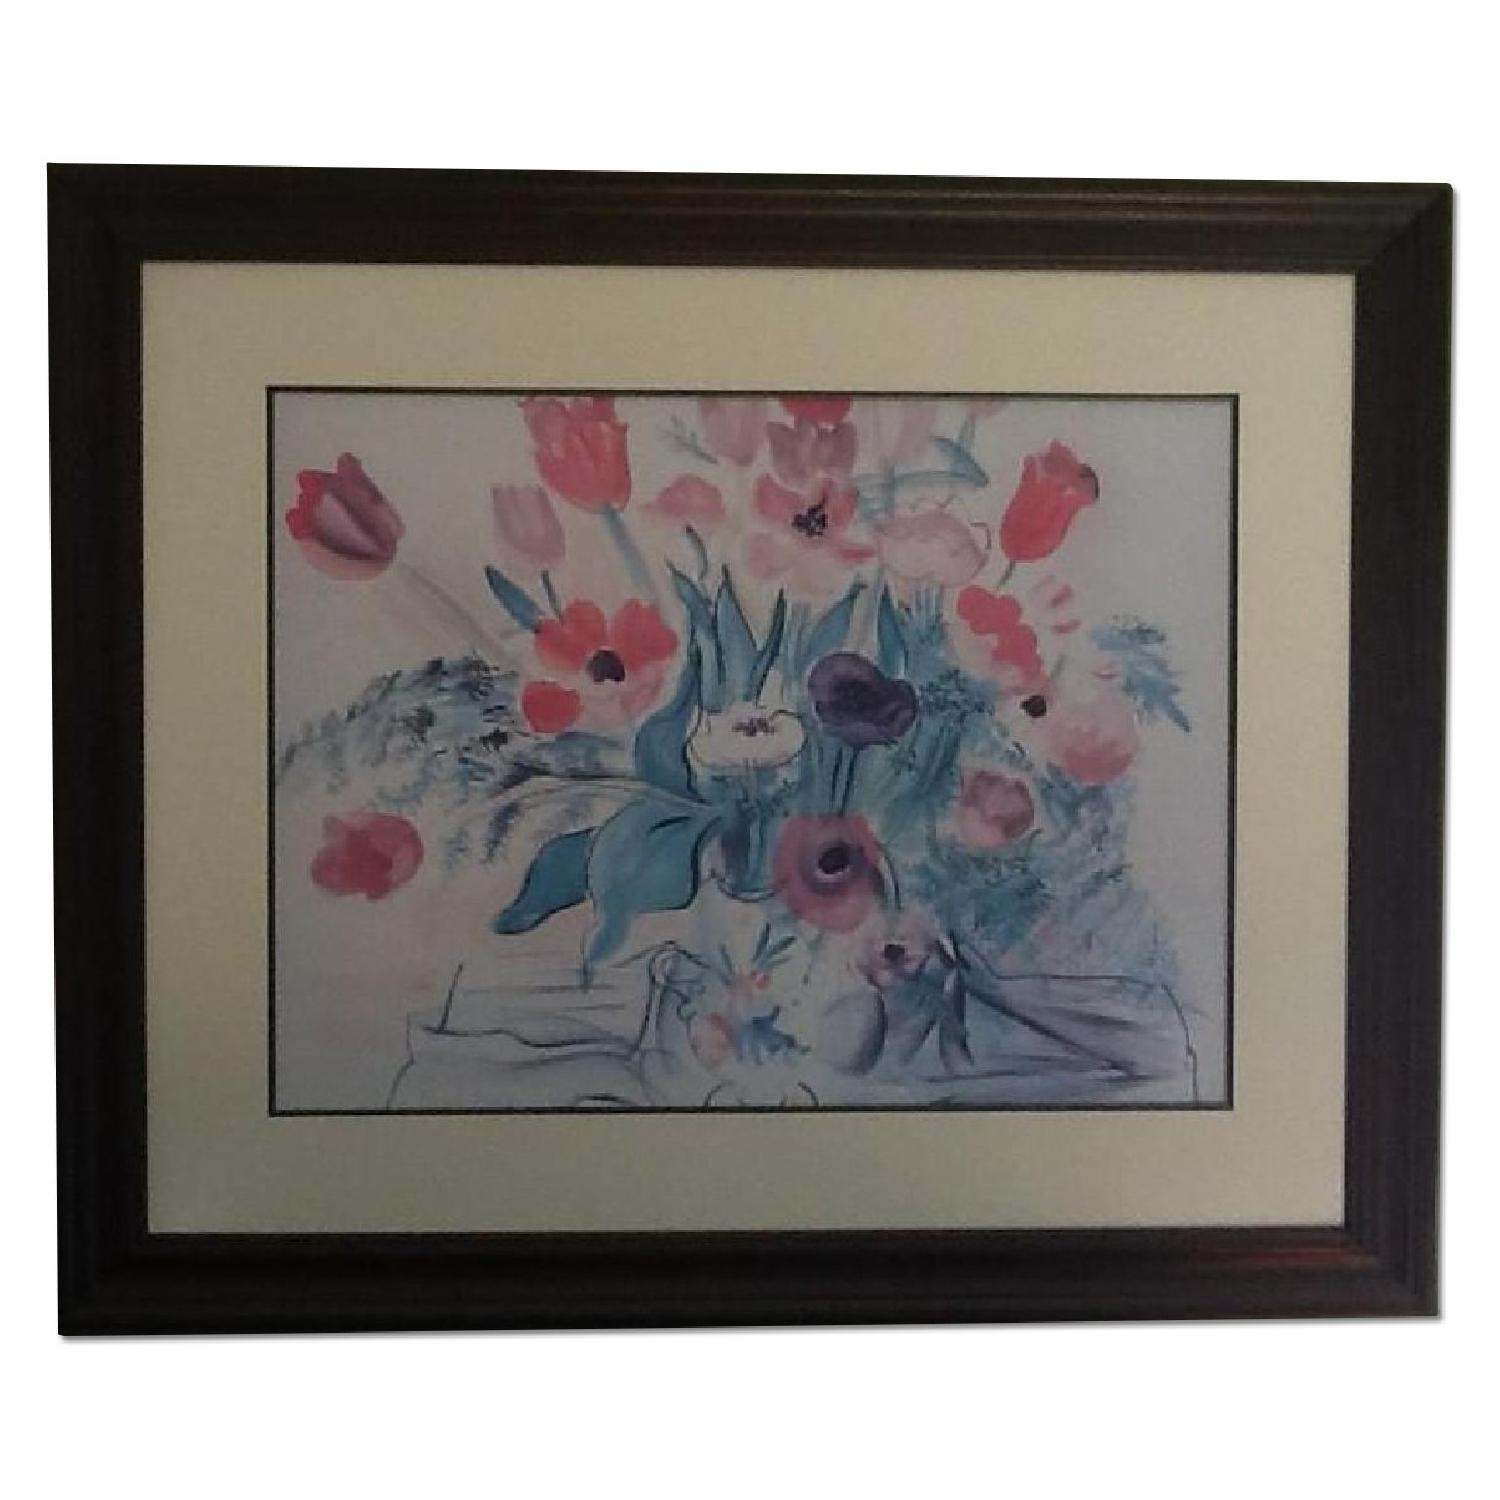 Framed & Matted Raoul Dufy Poster - Tulips & Peonies - image-0